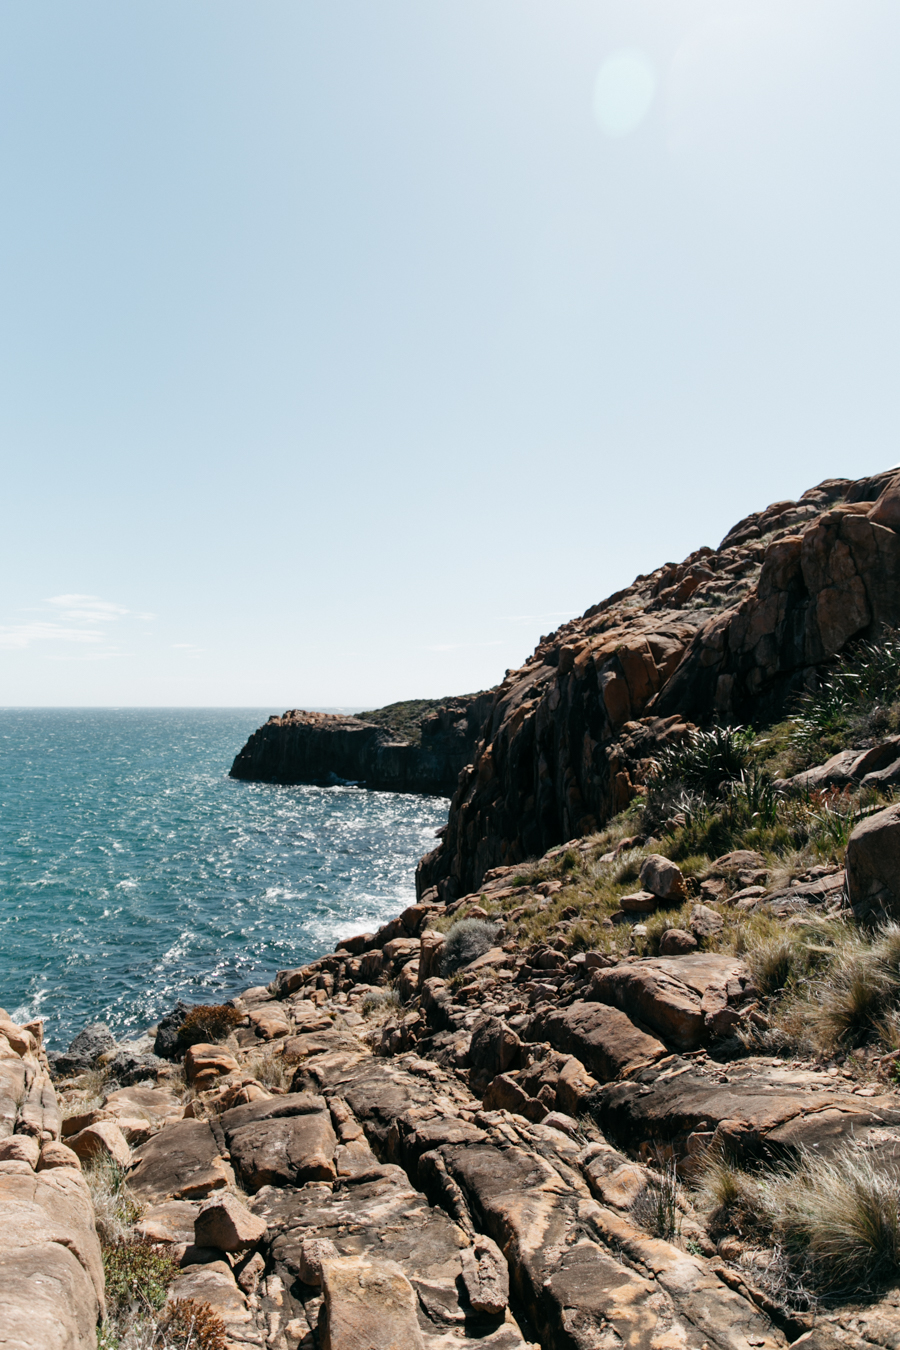 Travelling south-western Australia.